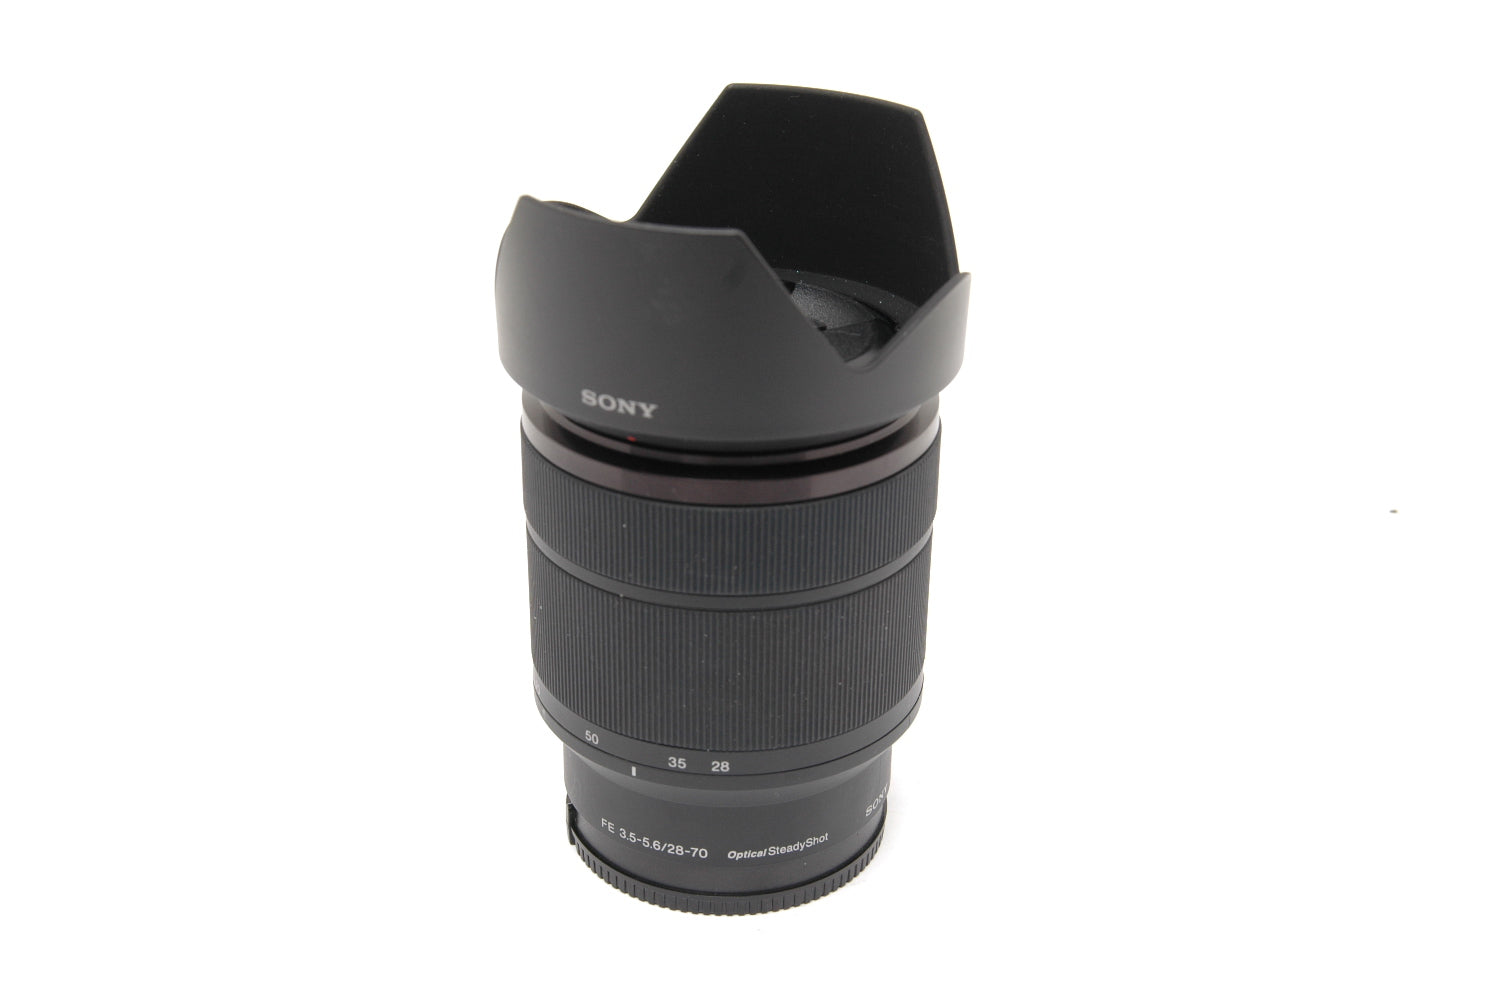 Used Sony FE 28-70mm f/3.5-5.6 OSS Lens